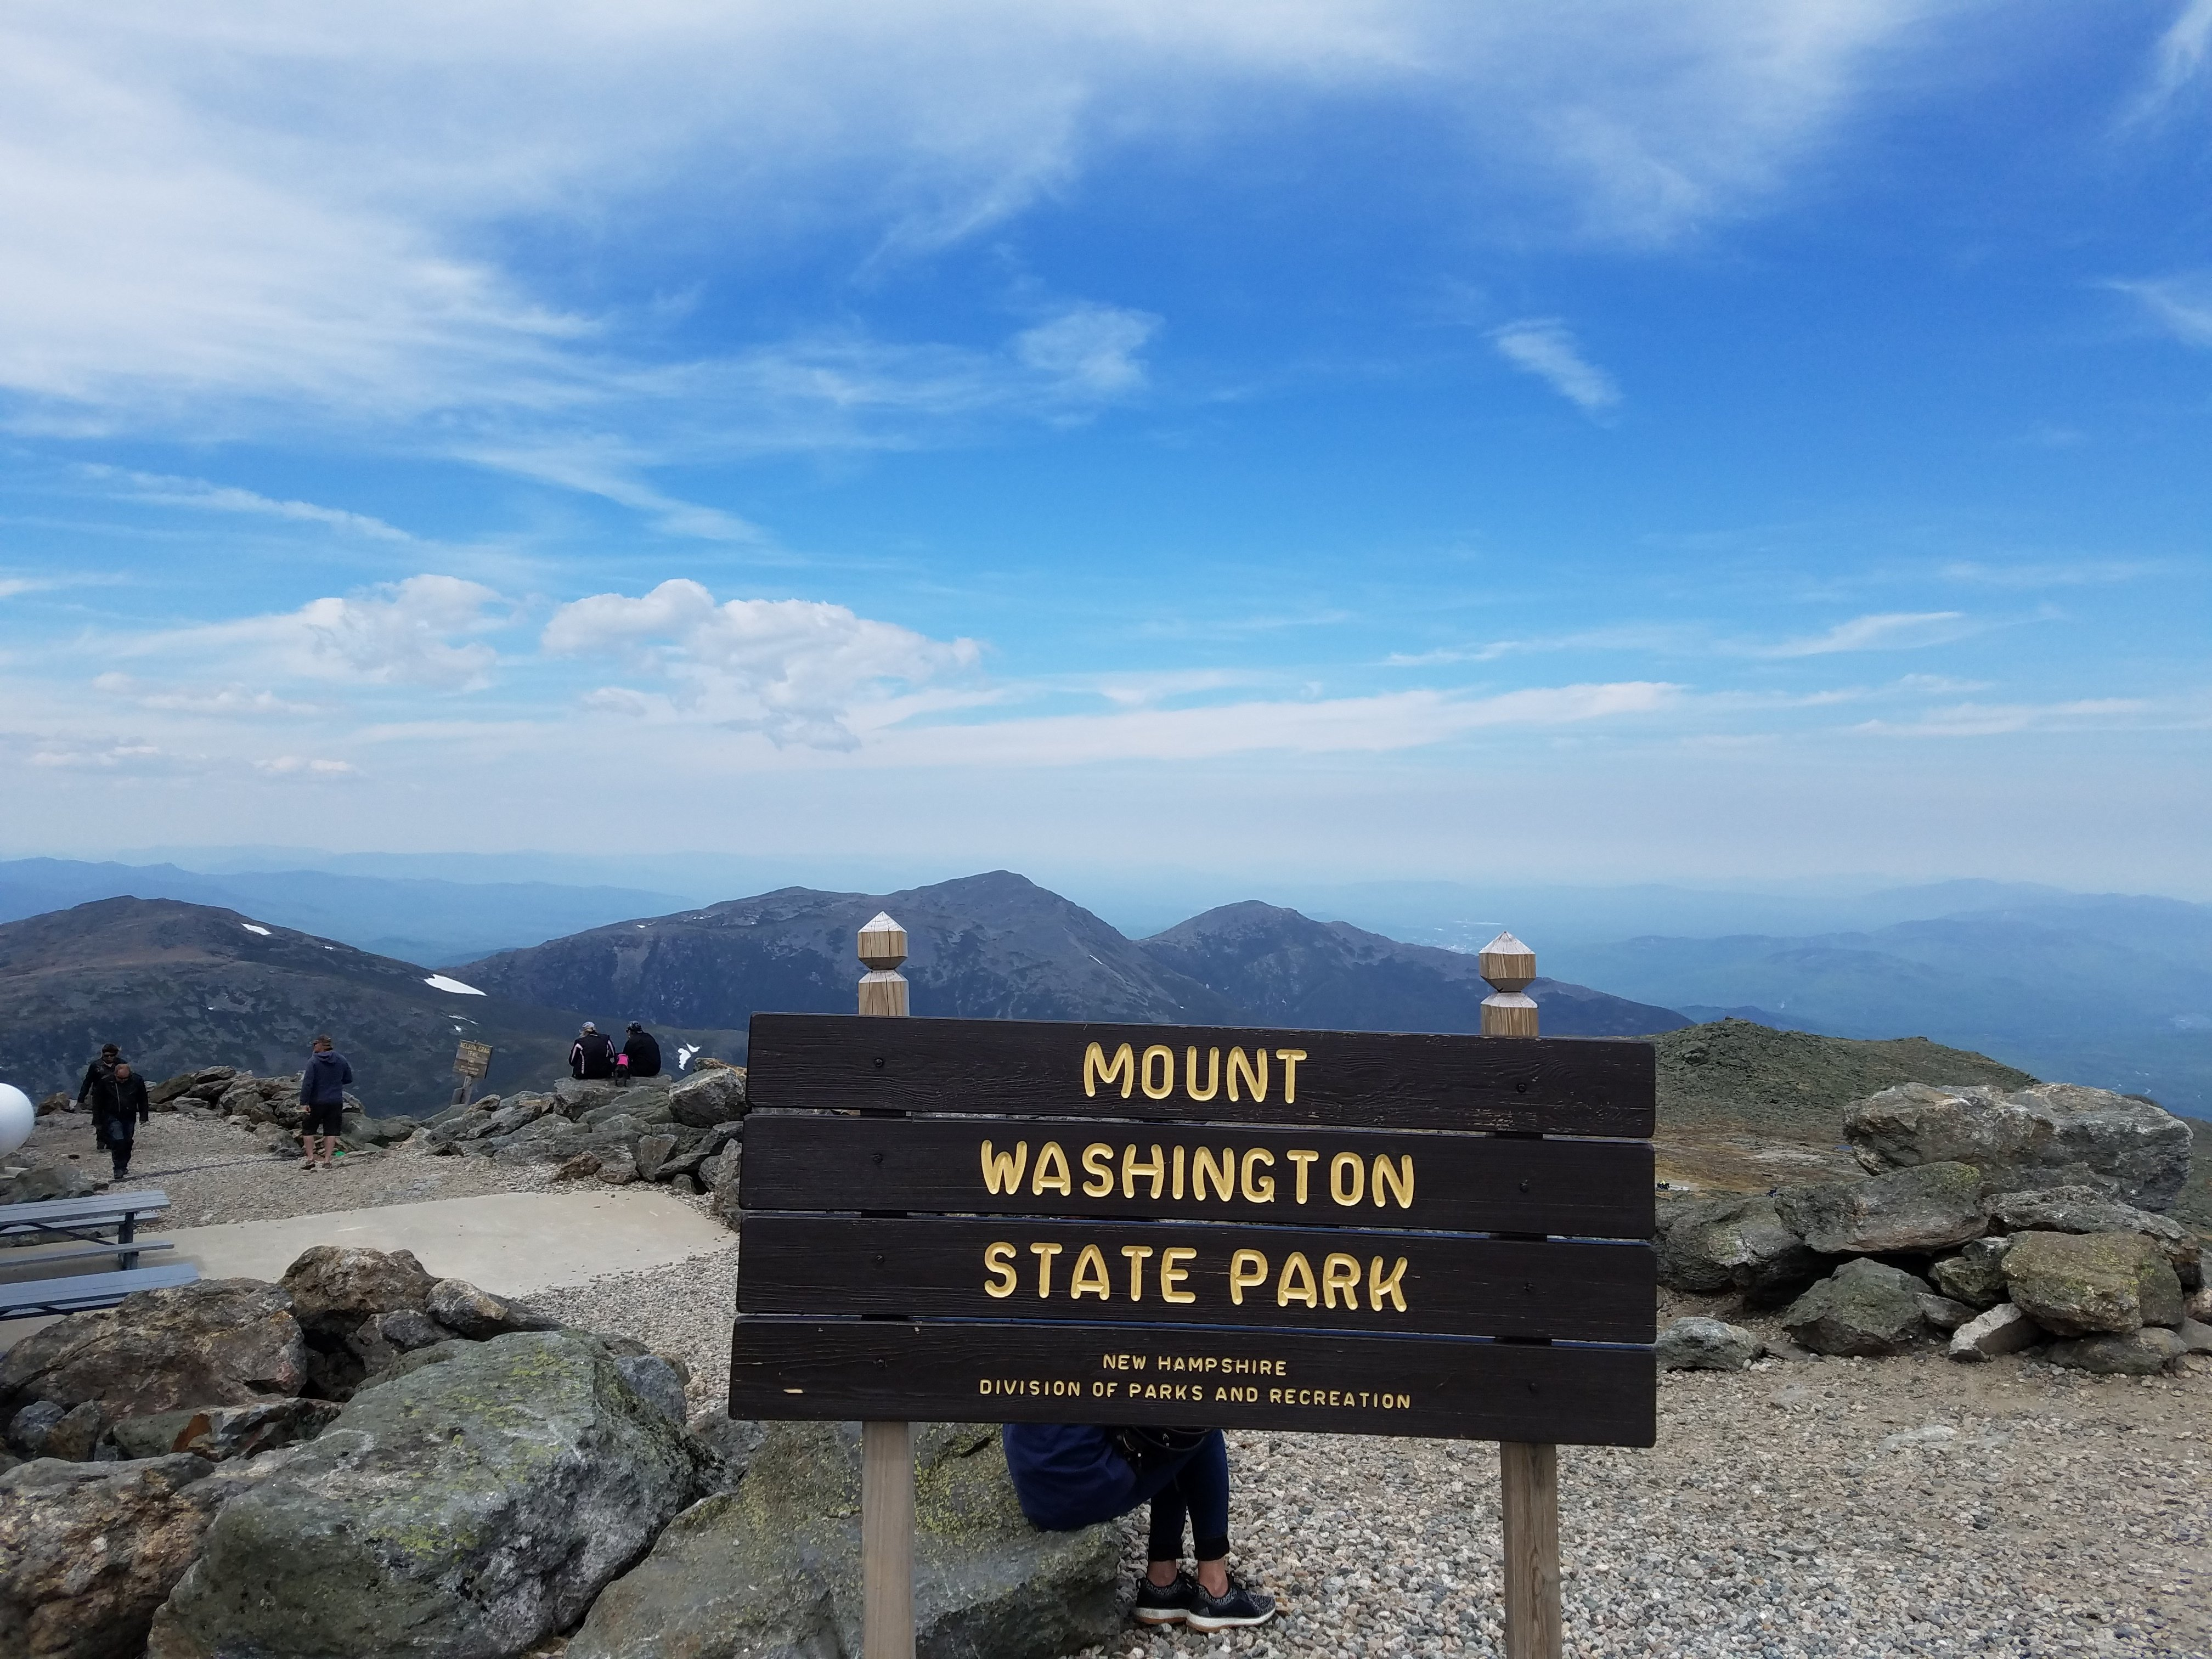 Monday June 10 - Mount Washington